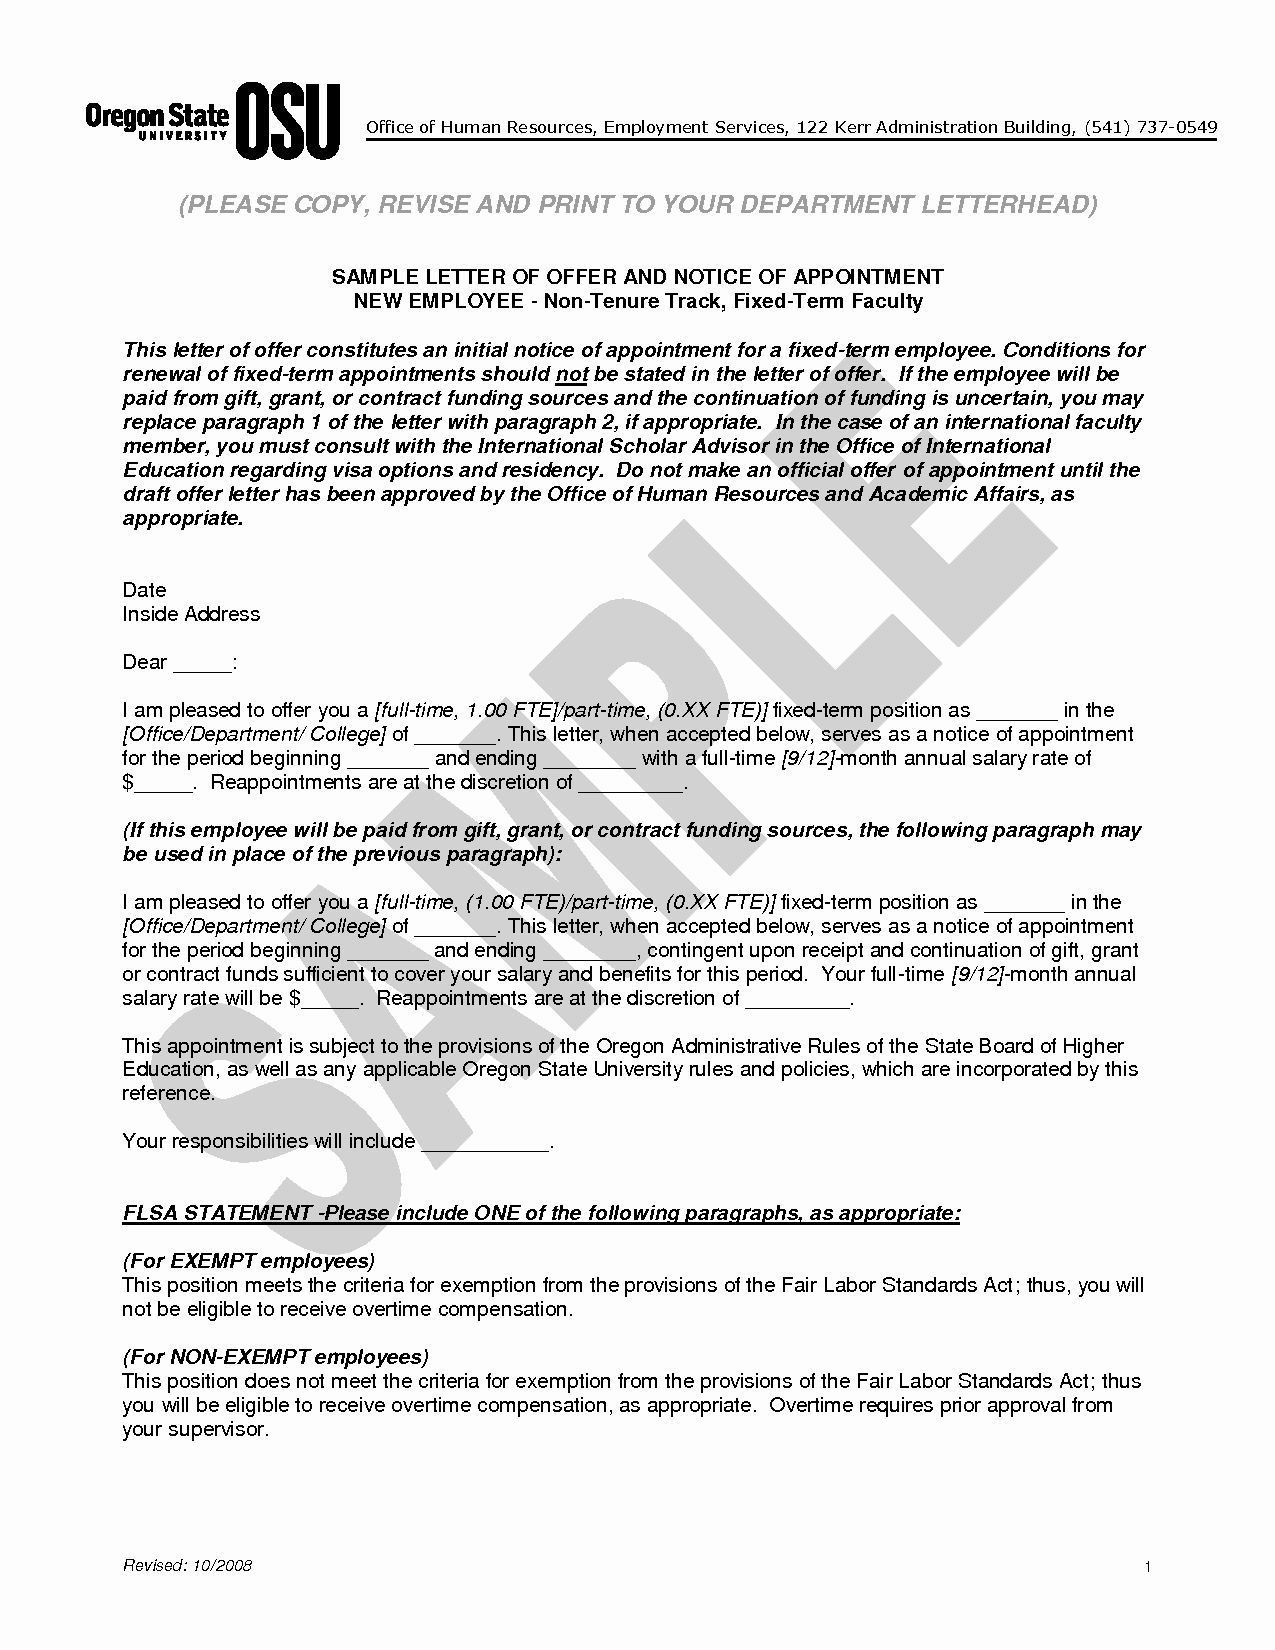 Voluntary Demotion Letter Template Fresh Best S Of Notice Demotion Letter Sample Audit